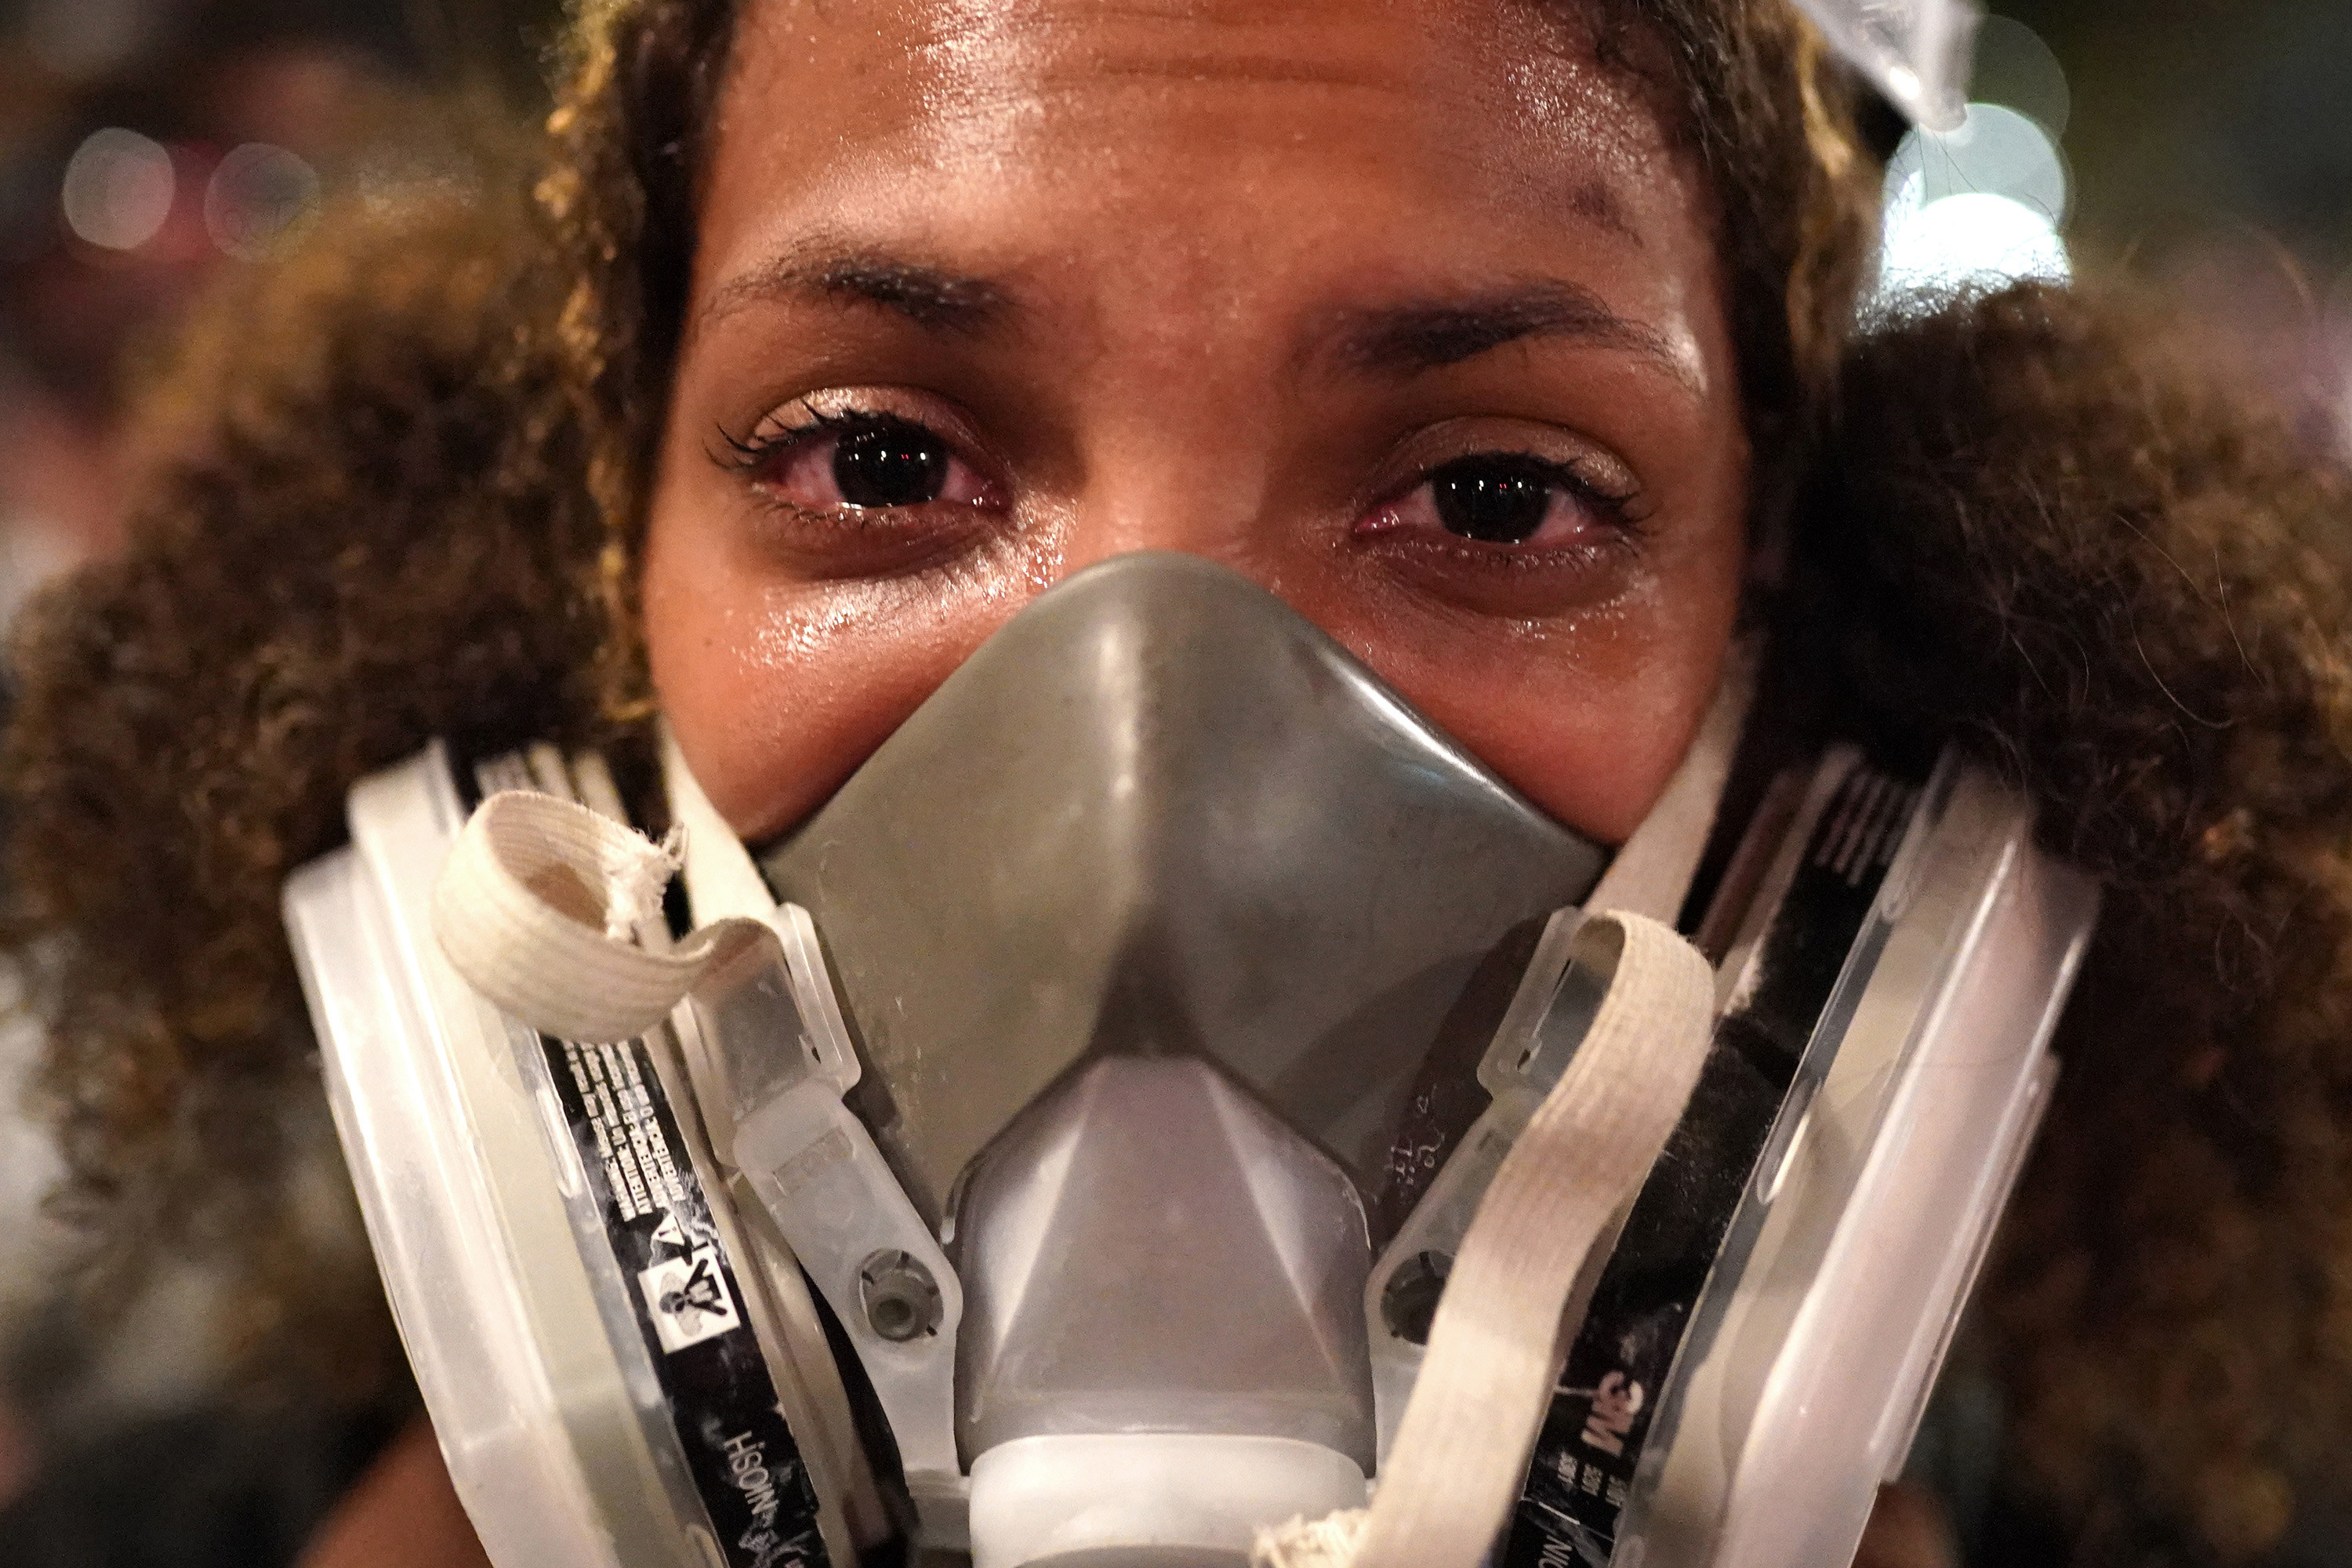 An extreme close-up of a woman wearing a mask as she reacts to tear gas and her eyes water